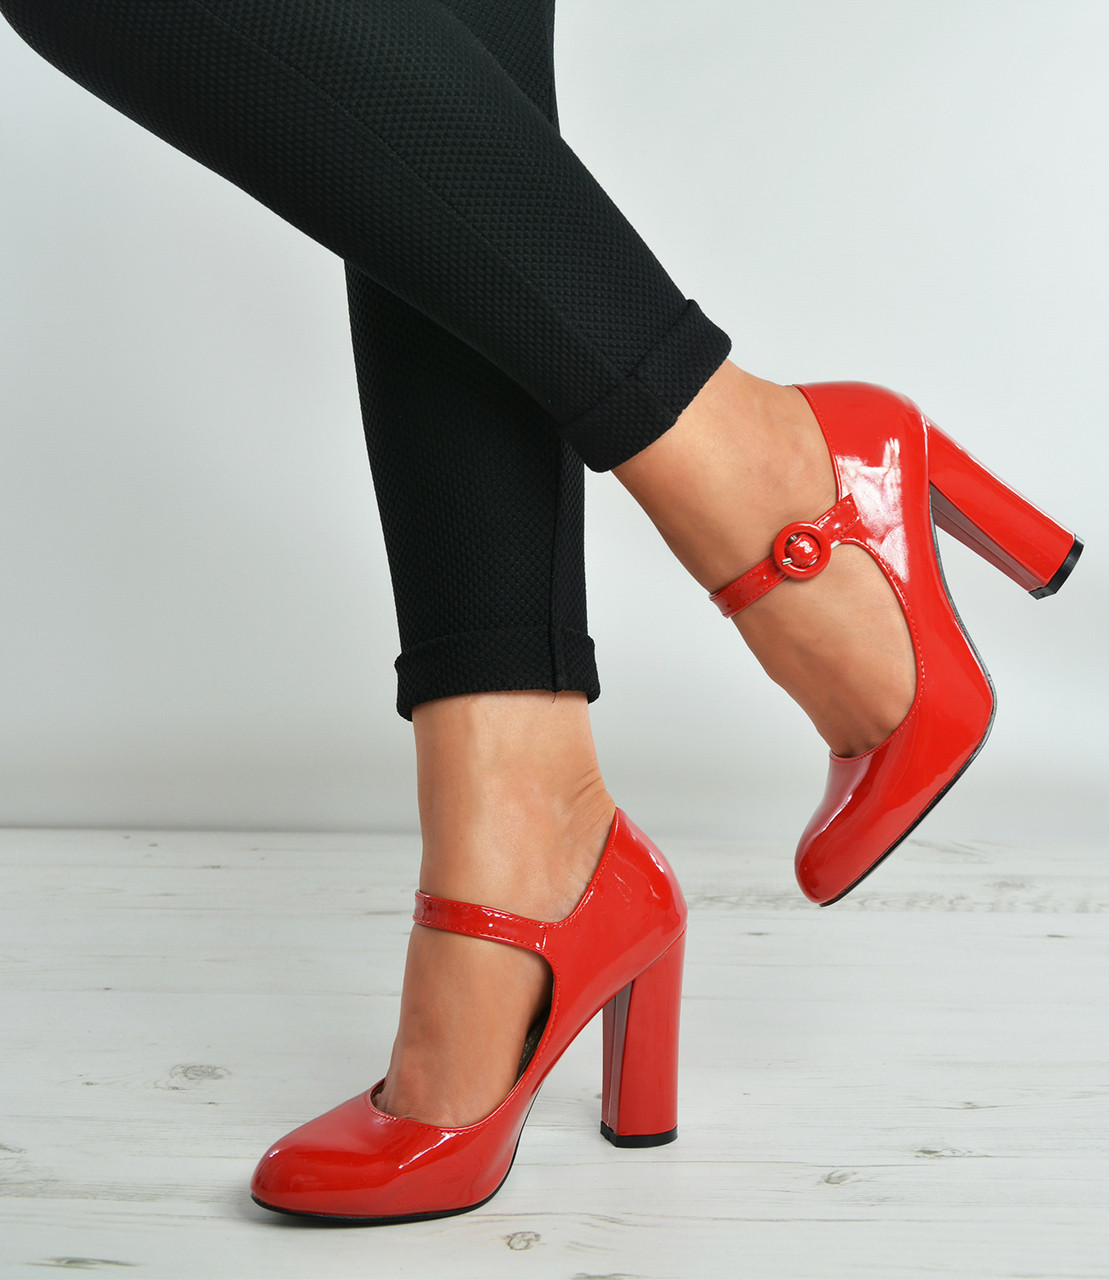 d9f71bb1636 Red Patent Ankle Strap High Block Heel Pumps Shoes Size Uk 3-8